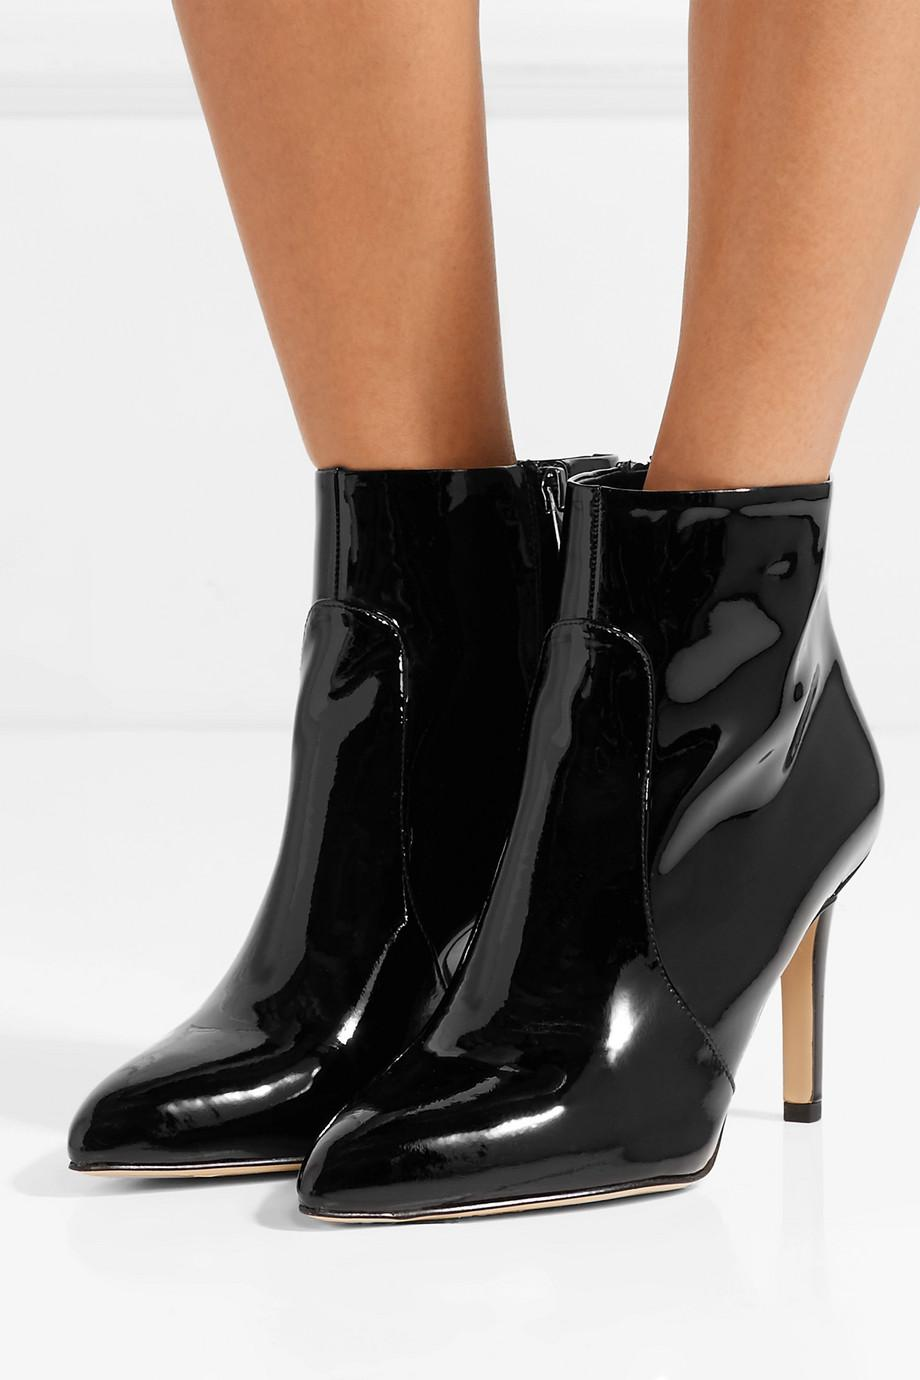 0652426d5905f7 Lyst - Sam Edelman Olette Patent-leather Ankle Boots in Black